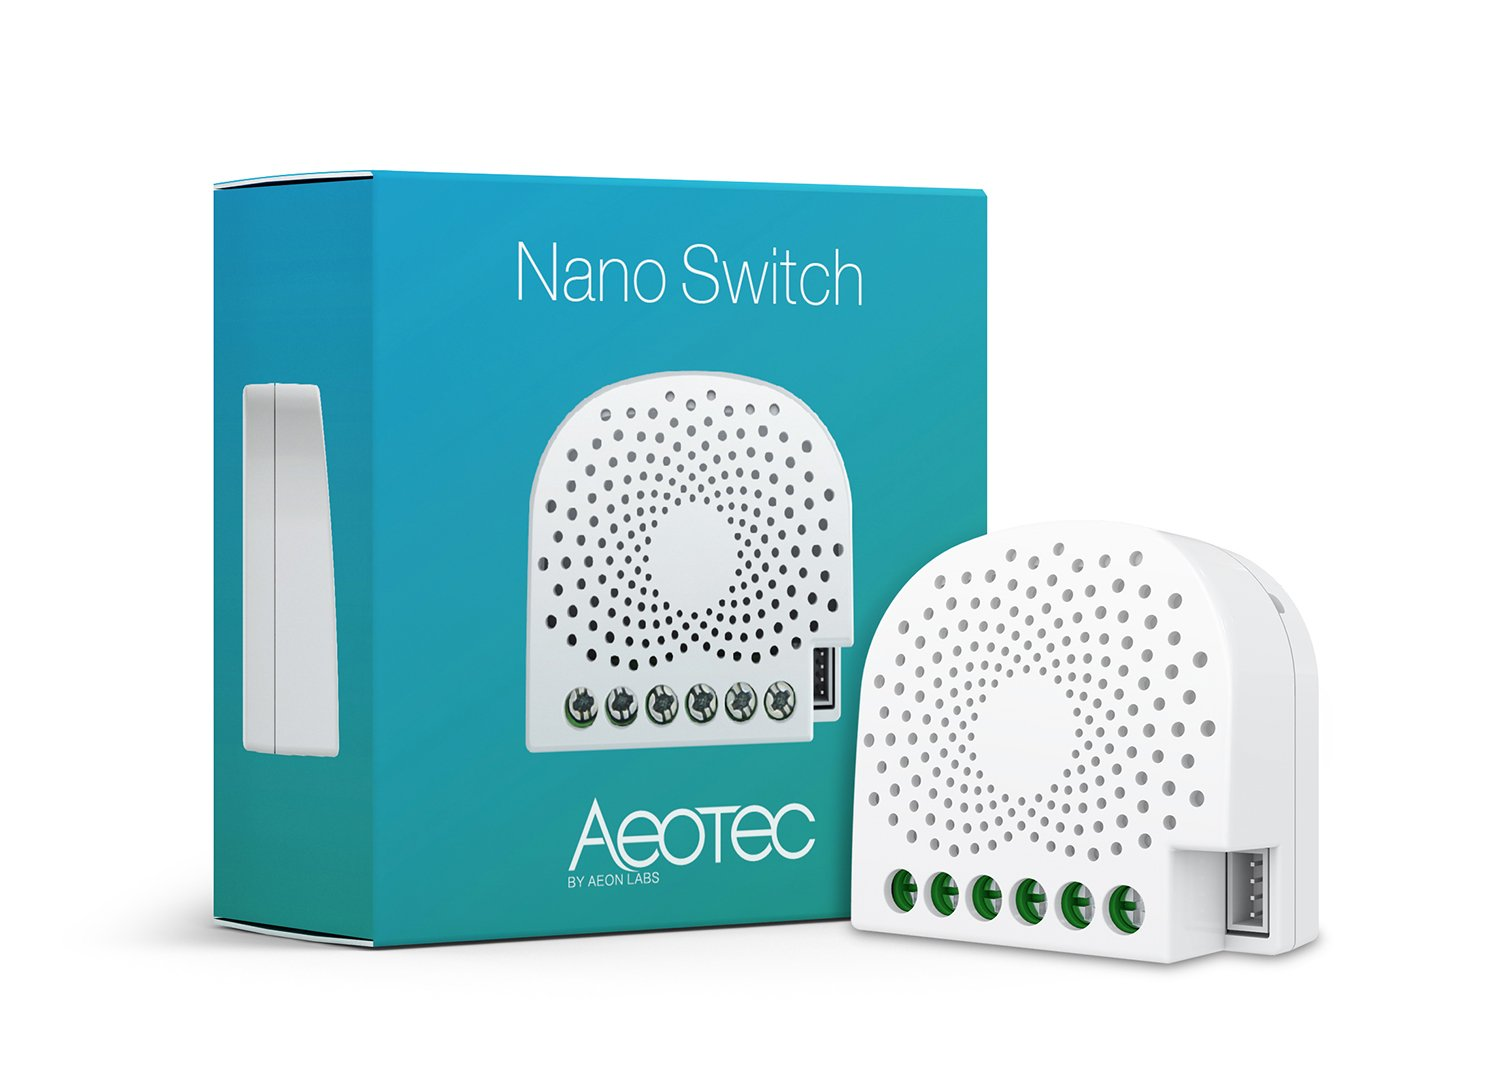 Aeotec Nano Switch On Off Controller Z Wave Plus In Wall Geeks Home Threeway Outlet Wiring Options Compatible With Alexa